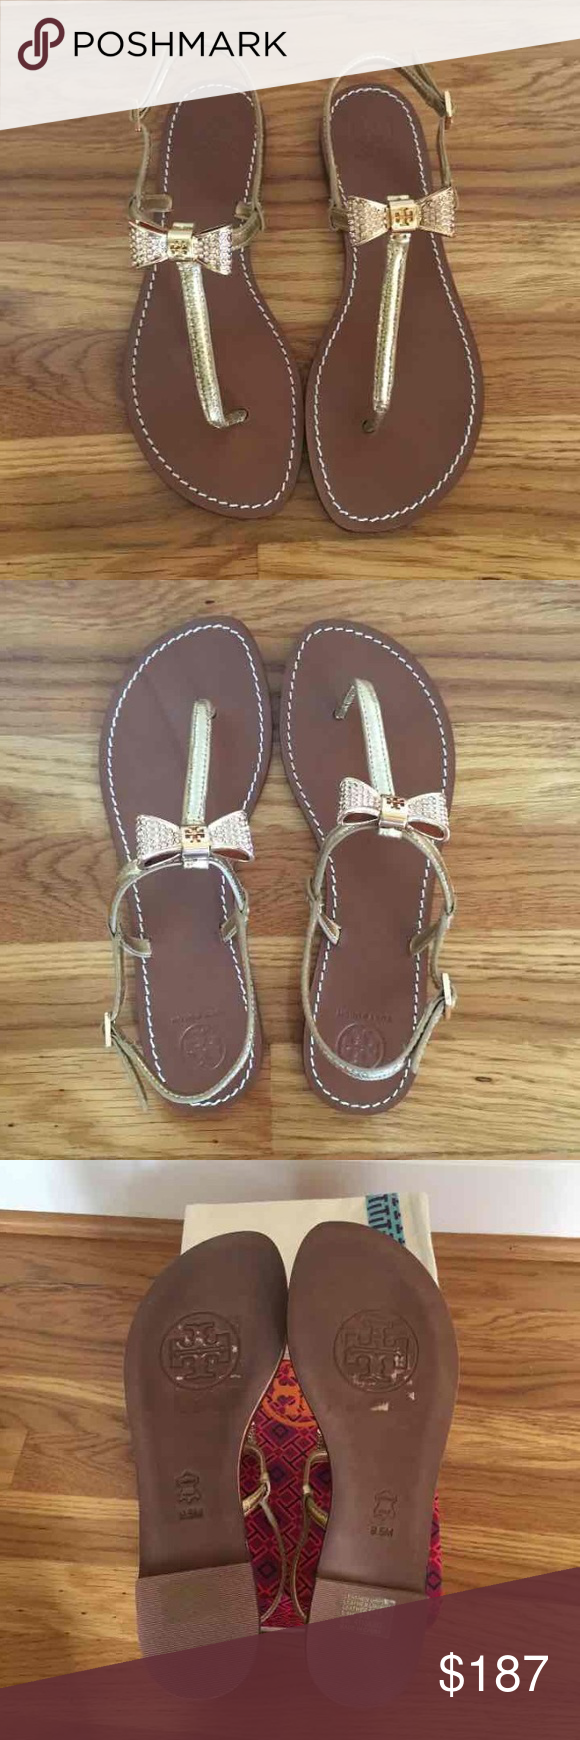 5f2ec9039995 ❗️LAST CHANCE❗  250 Tory Burch sandal sz 8.5 New with tags and ...